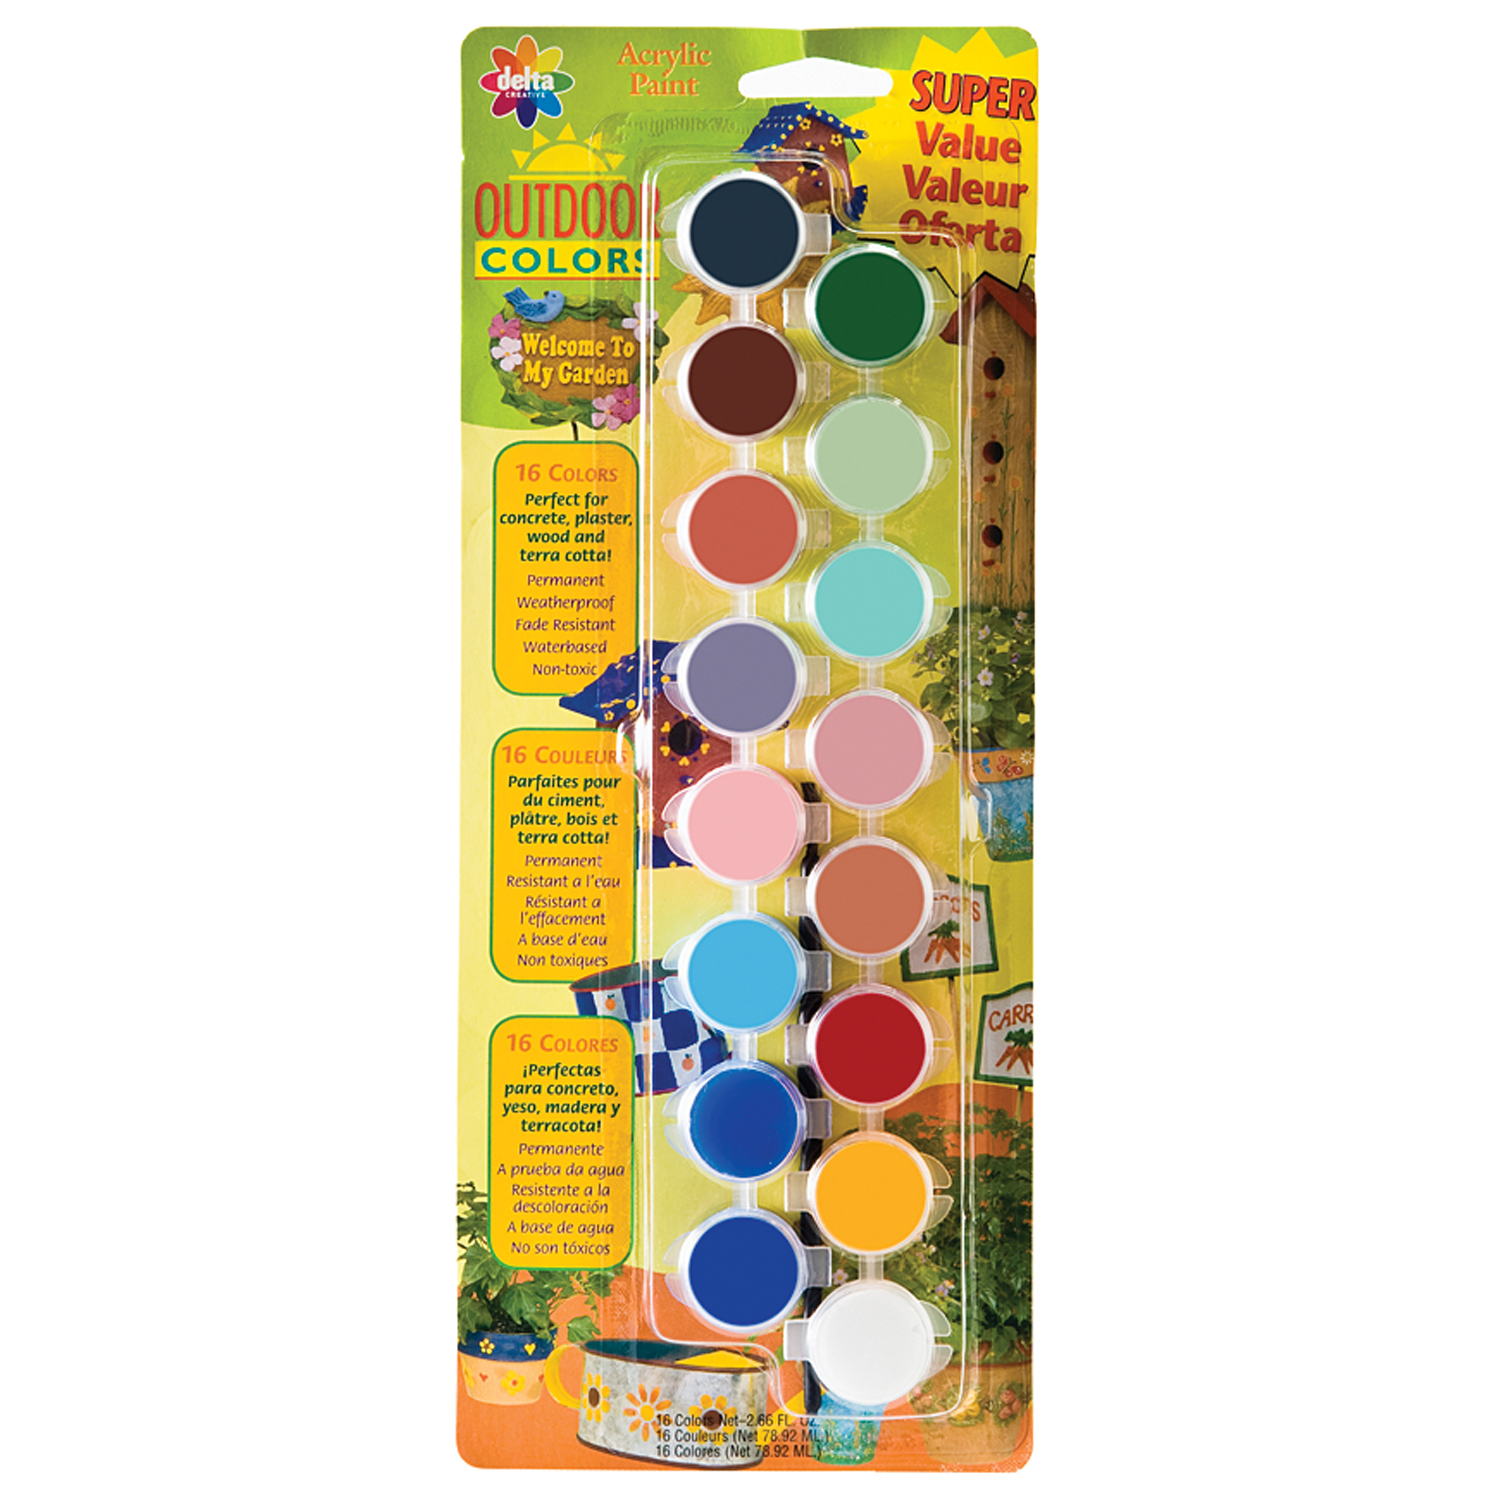 Delta Creative Paint Pots Set With Paint And Brush For Outdoors, 027050056  (16 Colors